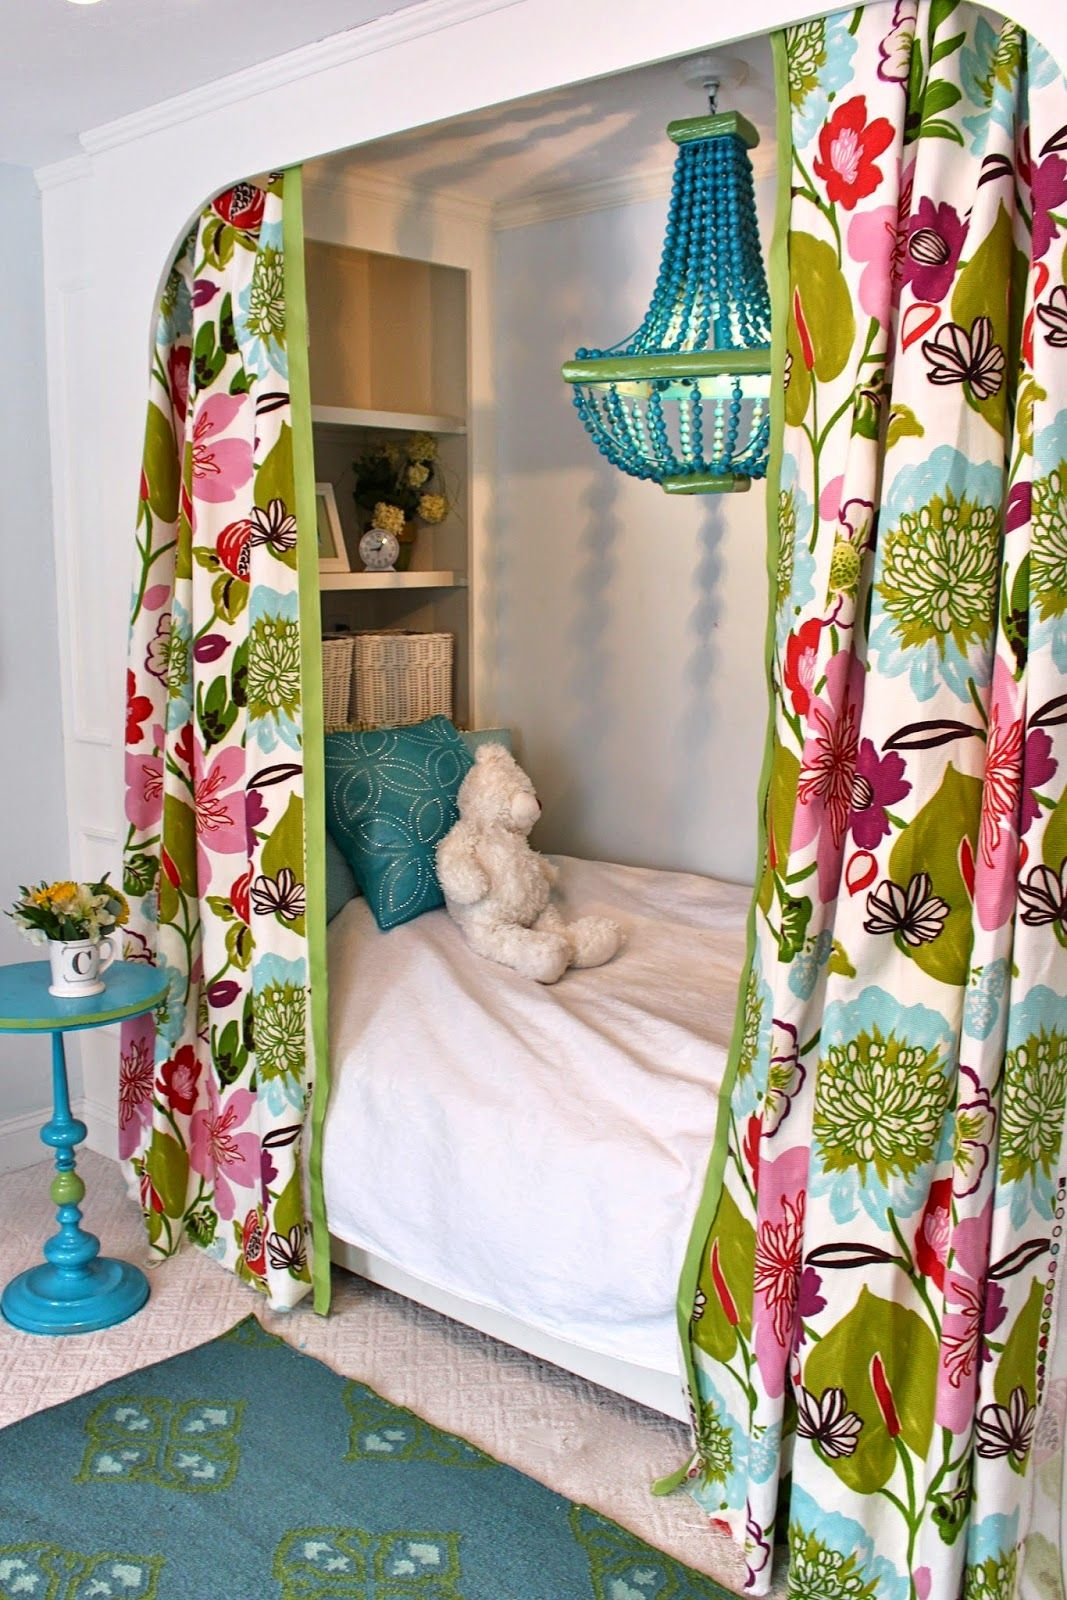 Designs For Girls Rooms: Tween Girls' Bedroom Reveal In Pink, Blue, And Floral With